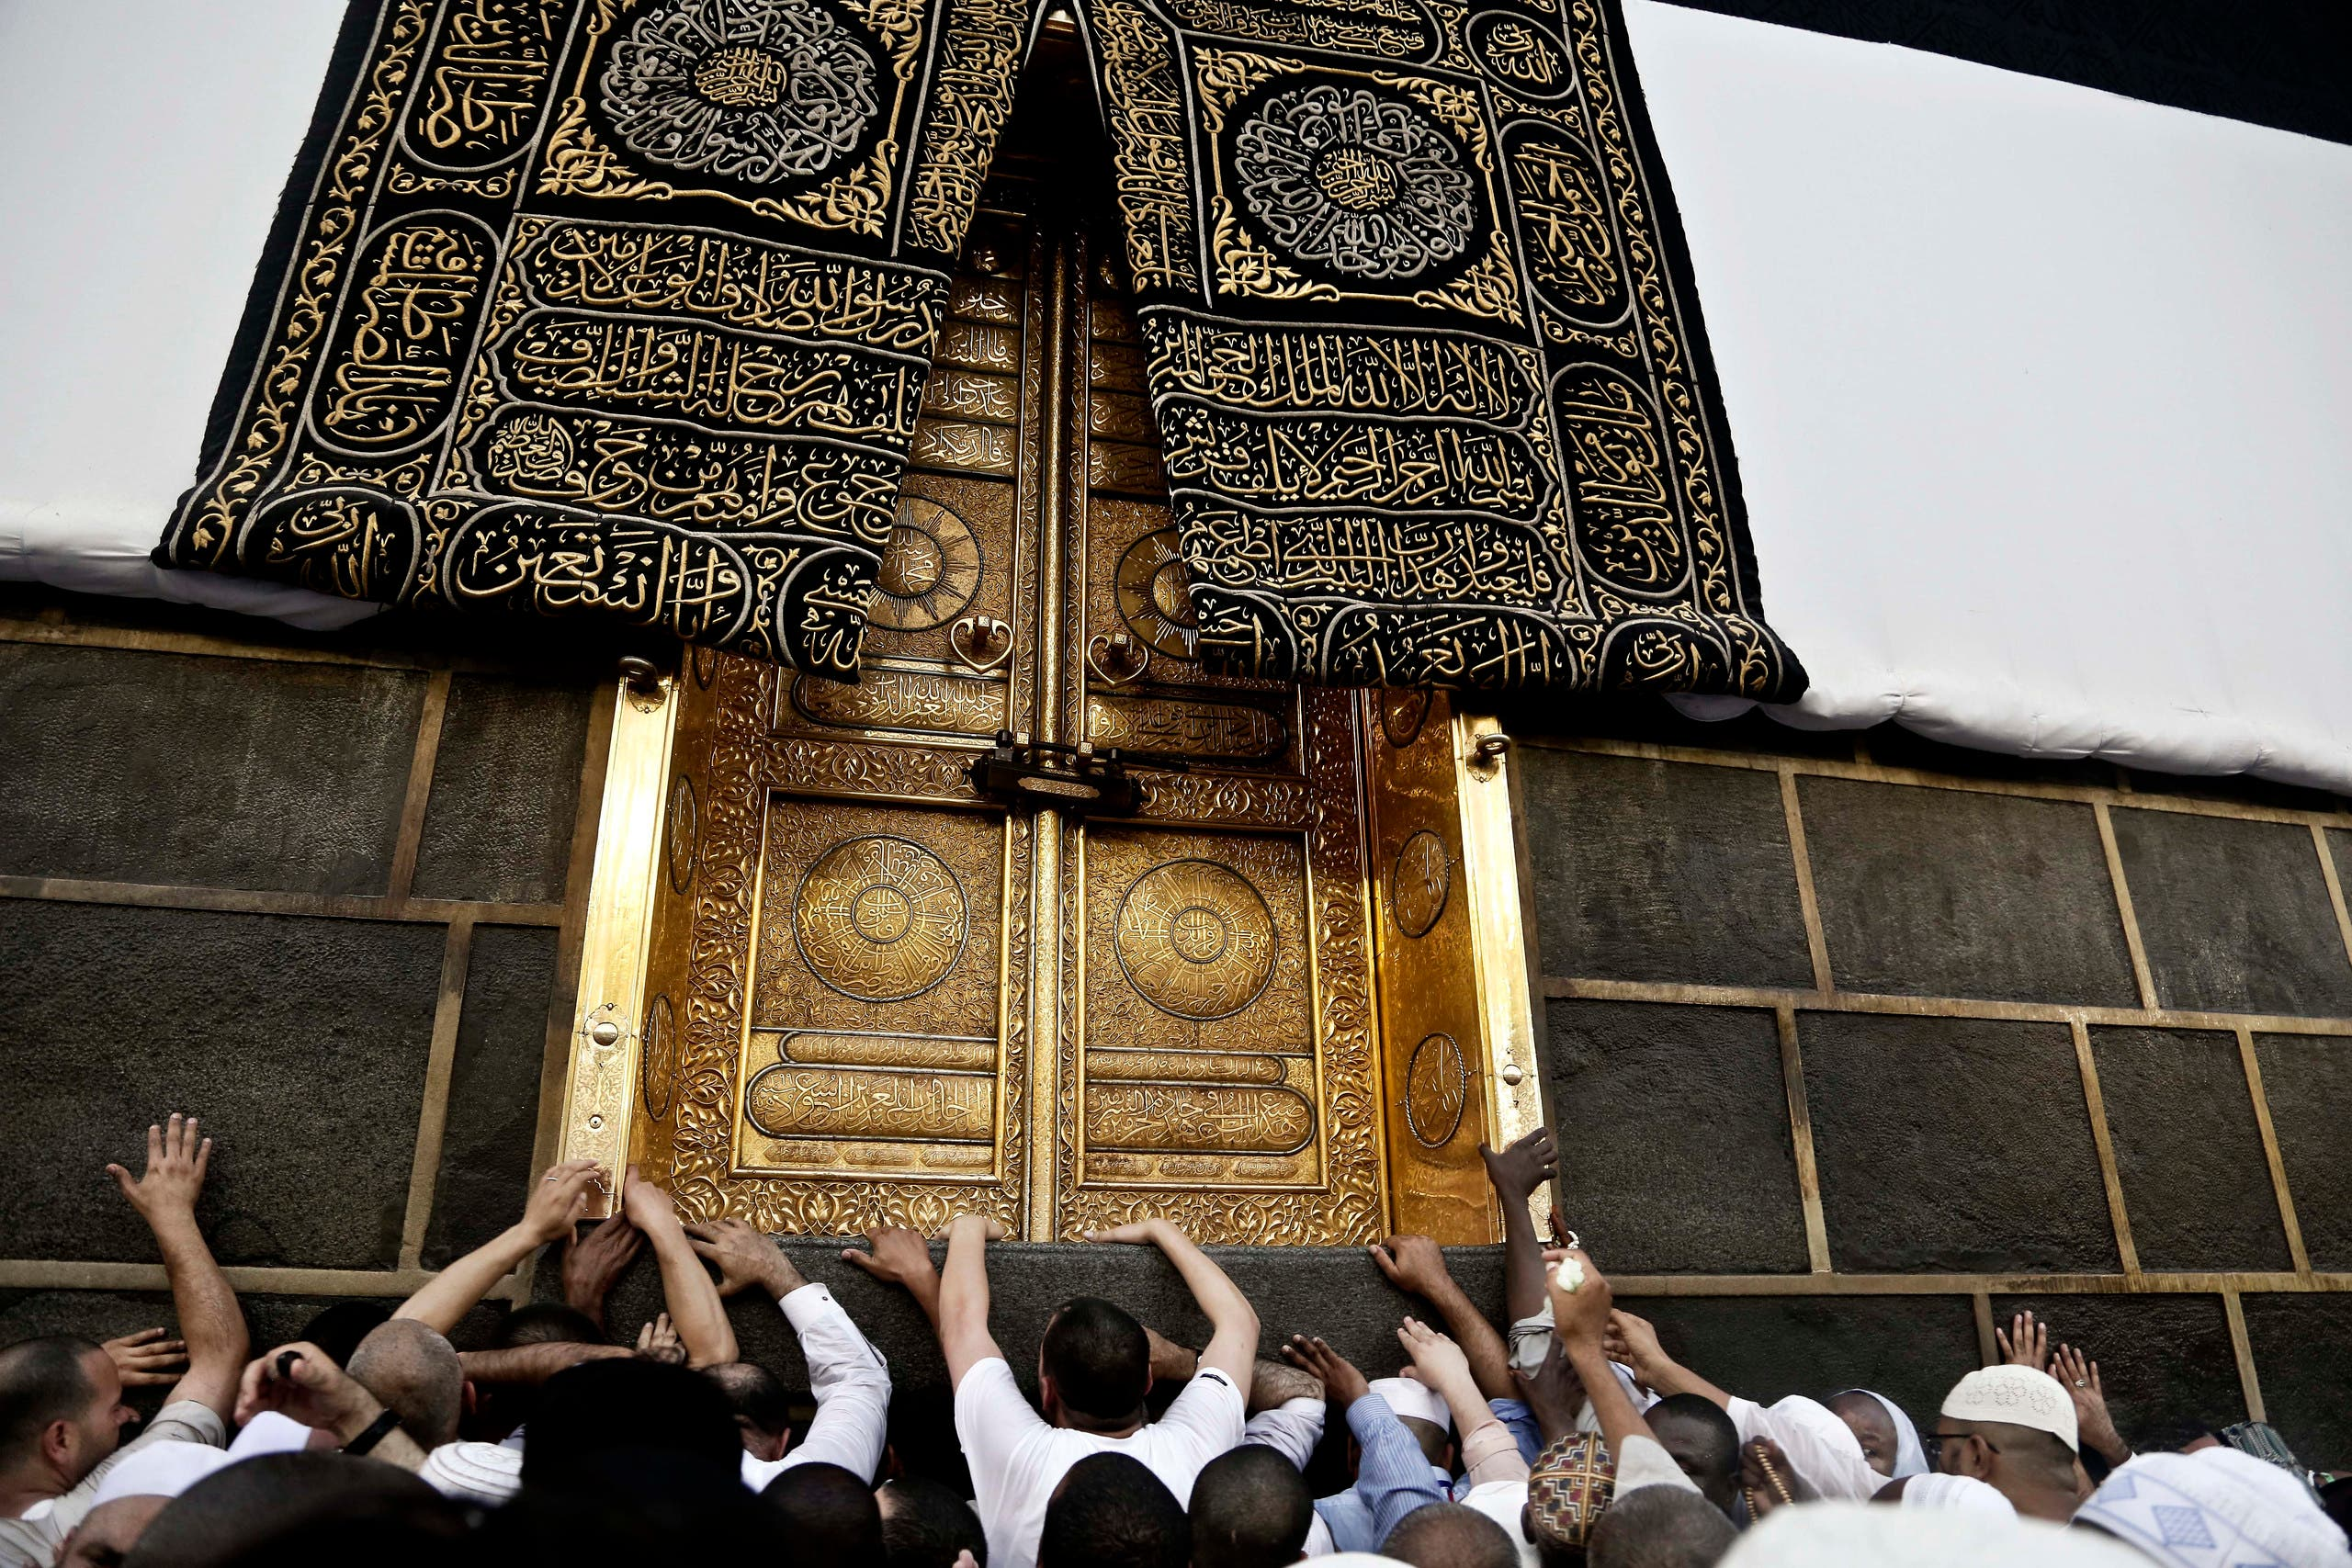 Muslim pilgrims touch the golden door of the Kaaba, Islam's holiest shrine, at the Grand Mosque in the Muslim holy city of Mecca, Saudi Arabia, Wednesday, Sept. 7, 2016. Millions of pilgrims have arrived to Mecca ahead of the Hajj annual pilgrimage which begins Saturday, Sept. 10, 2016. (AP)